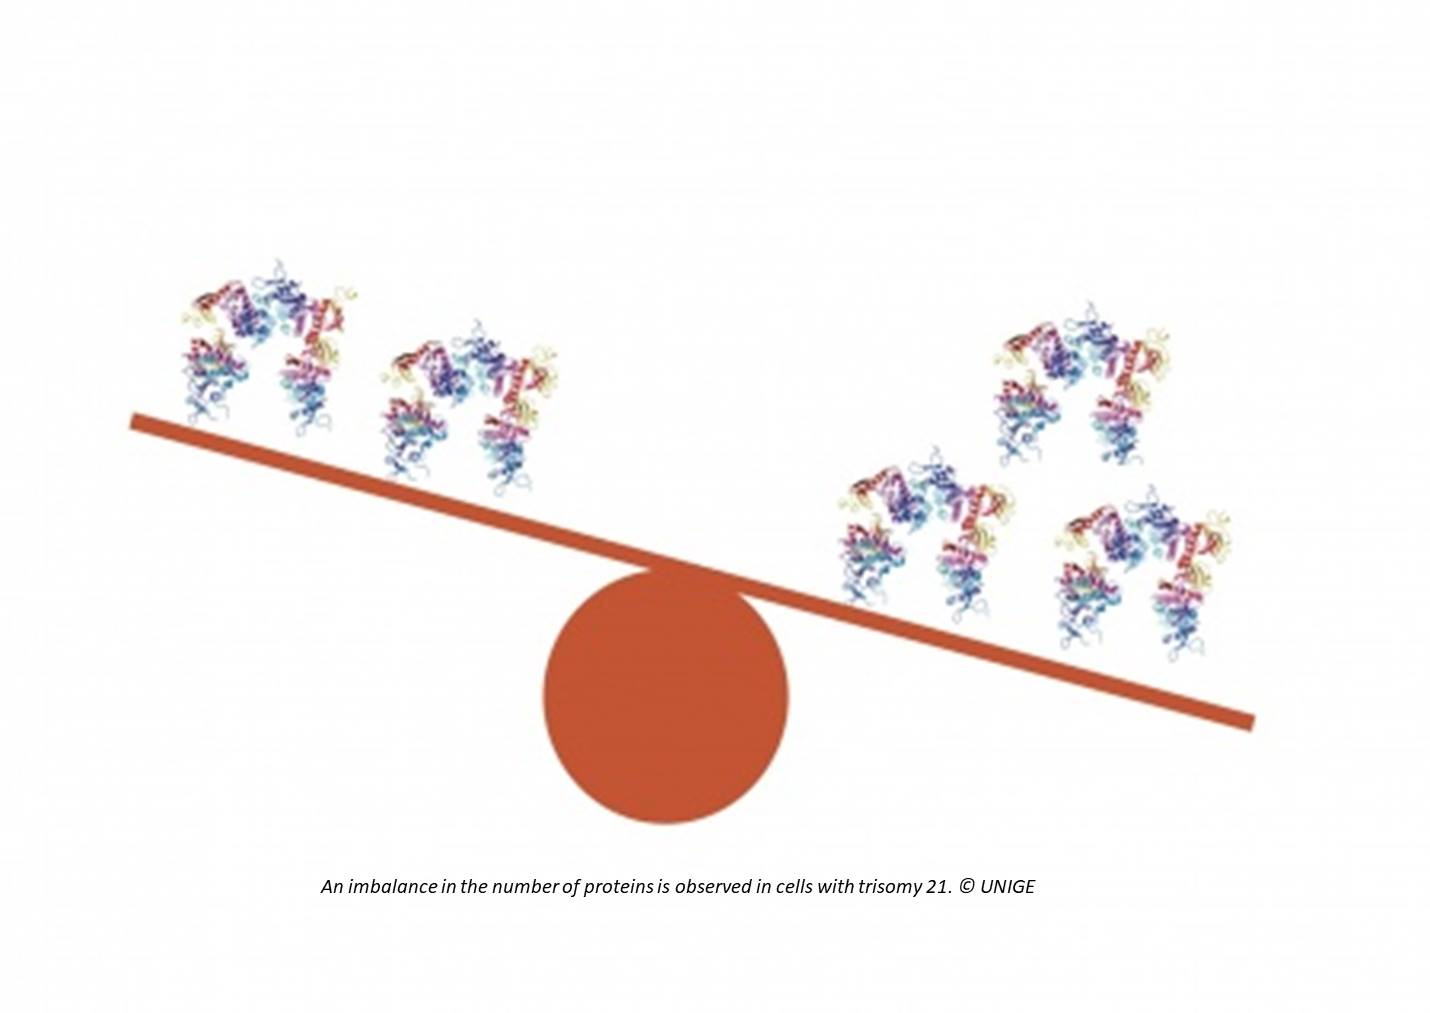 Uncontrolled protein de-regulation in cells may lead to trisomy-21symptoms